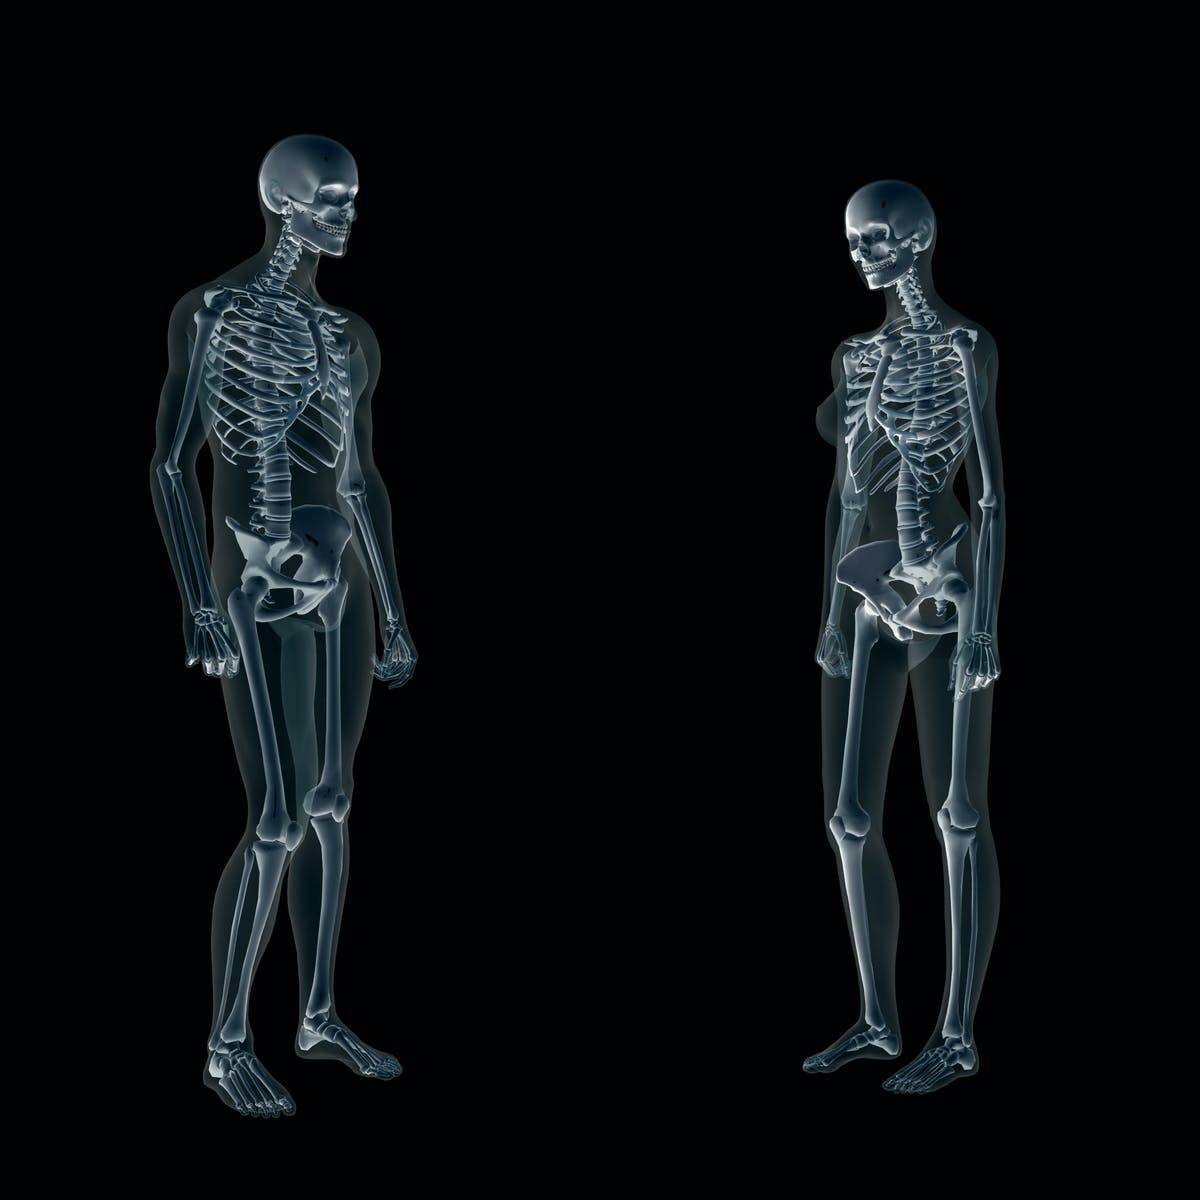 Both men and women need strong bones, but their skeletons